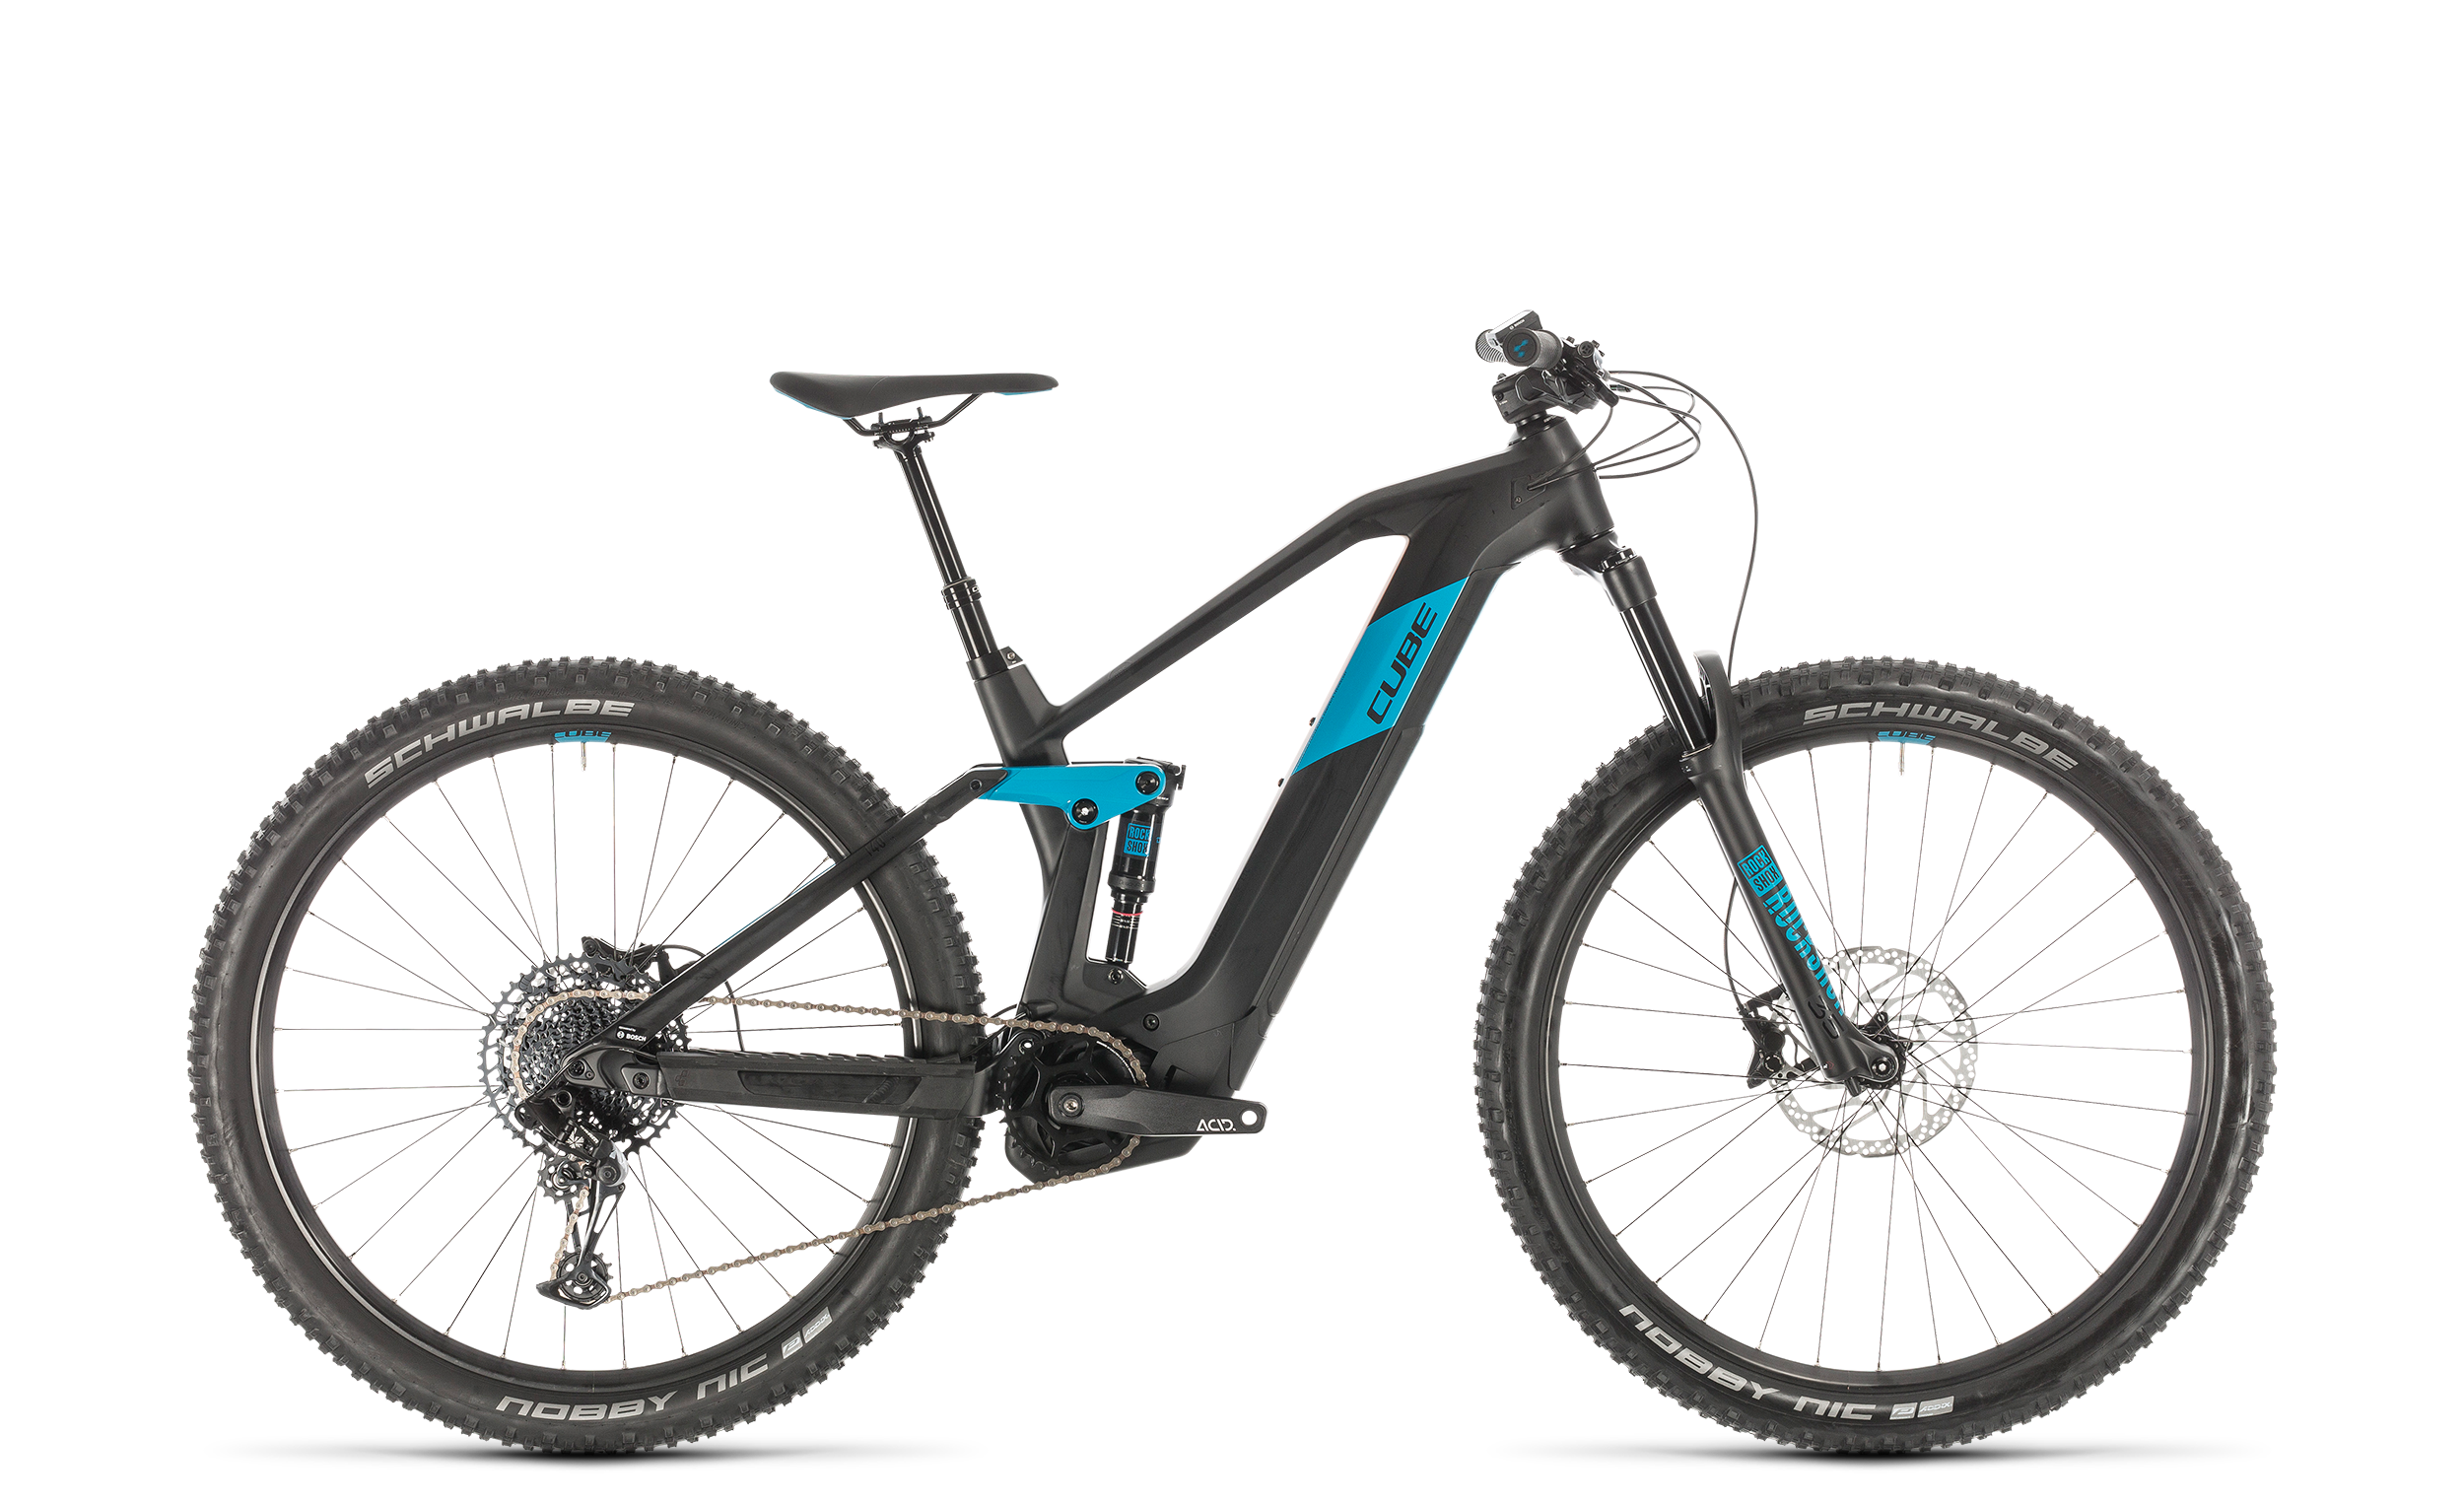 https://w8w5m3f8.stackpathcdn.com/16747-thickbox_extralarge/vtt-electrique-cube-stereo-hybrid-140-hpc-race-500wh-29.jpg